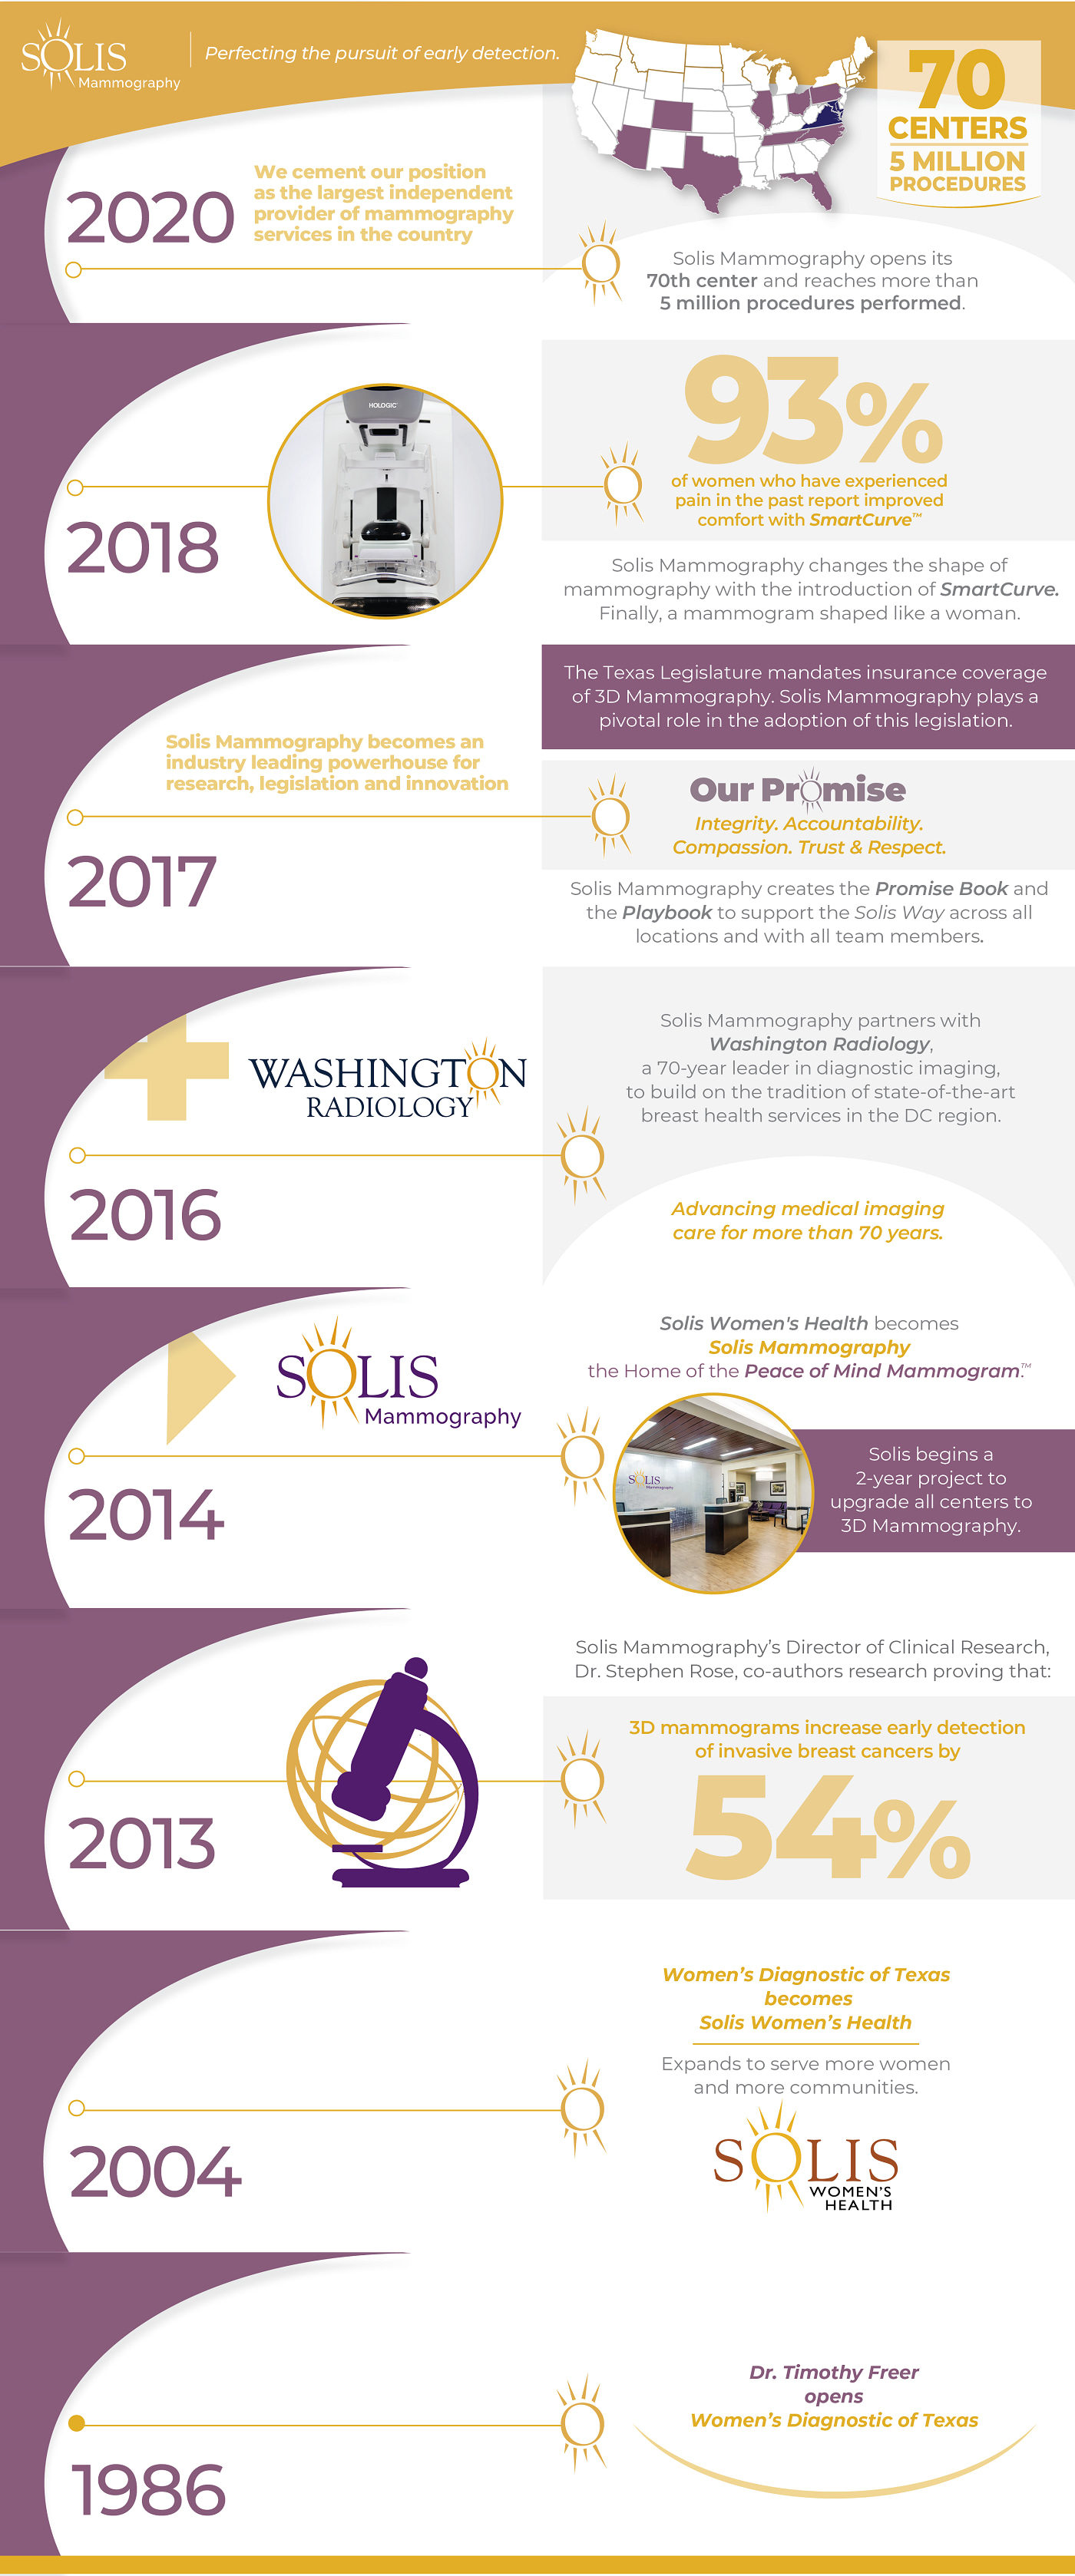 Solis Mammography Timeline